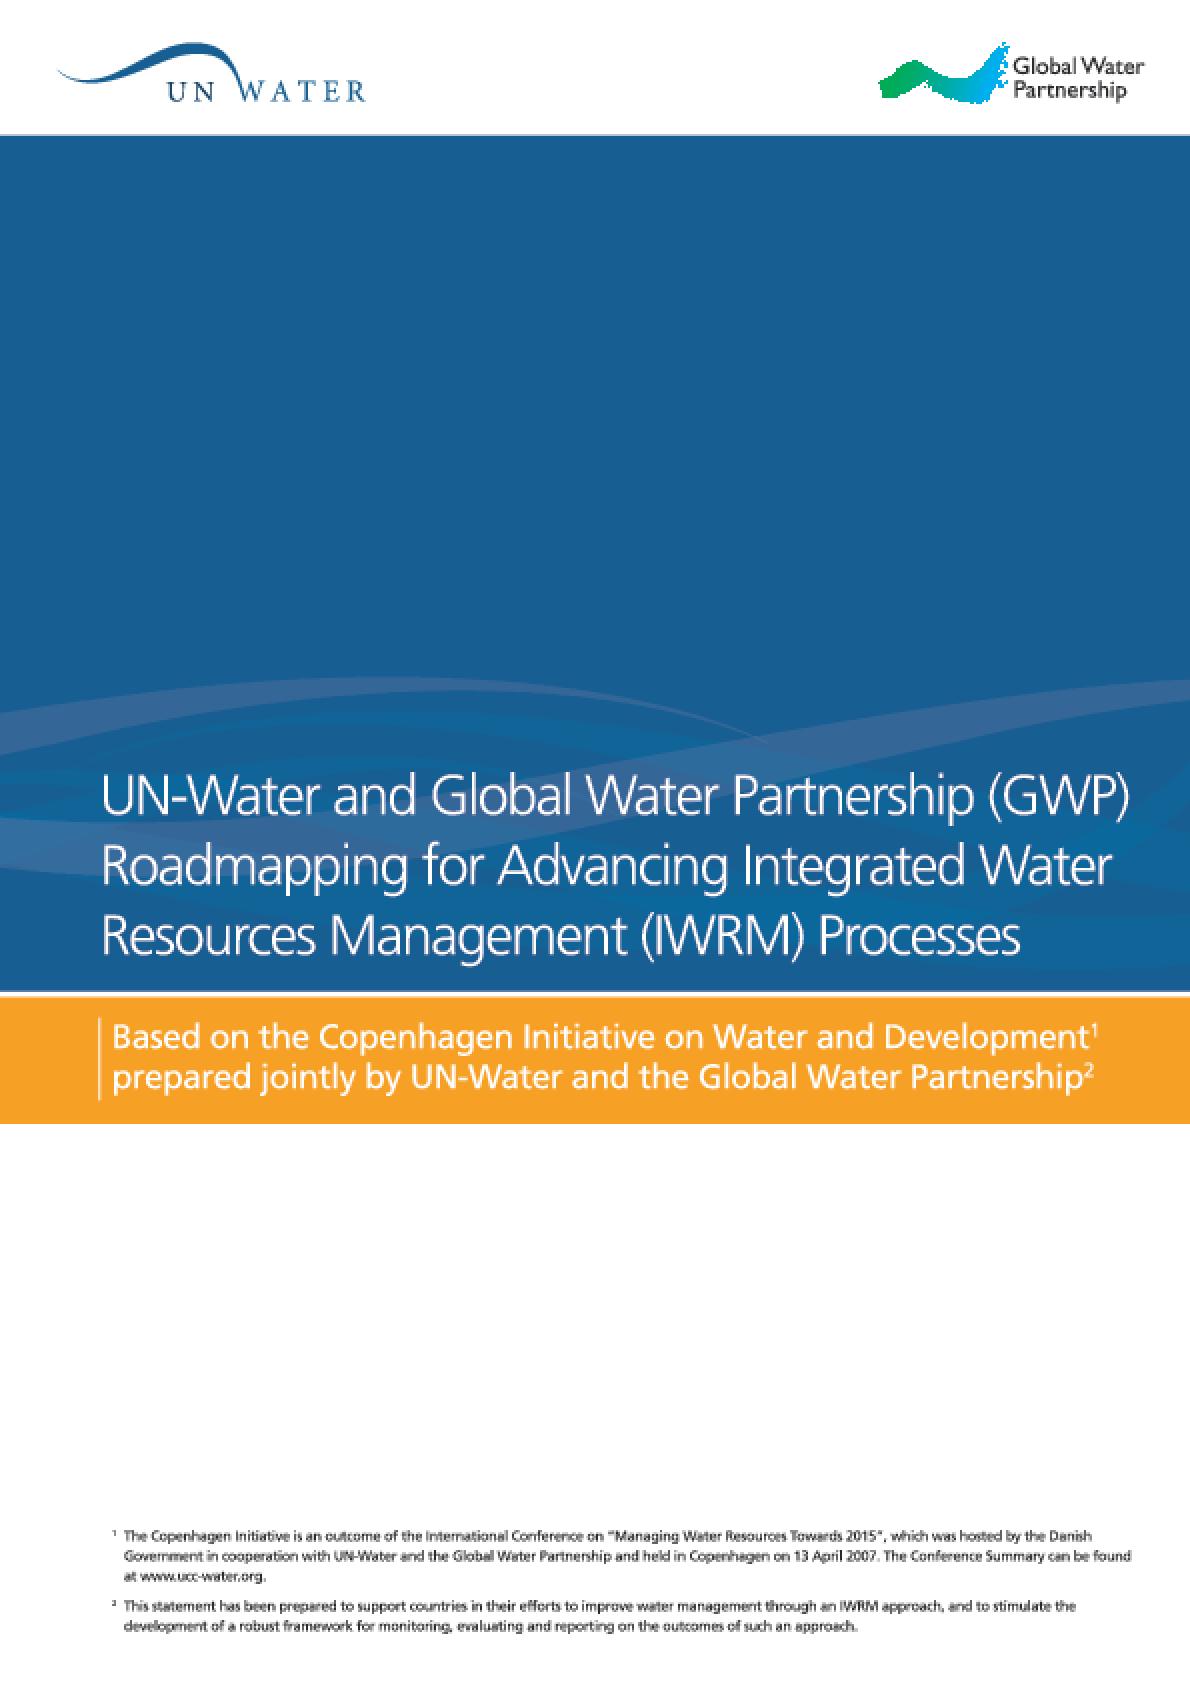 UN-Water and Global Water Partnership (GWP) Roadmapping for Advanced Integrated Water Resources Management (IWRM) Processes